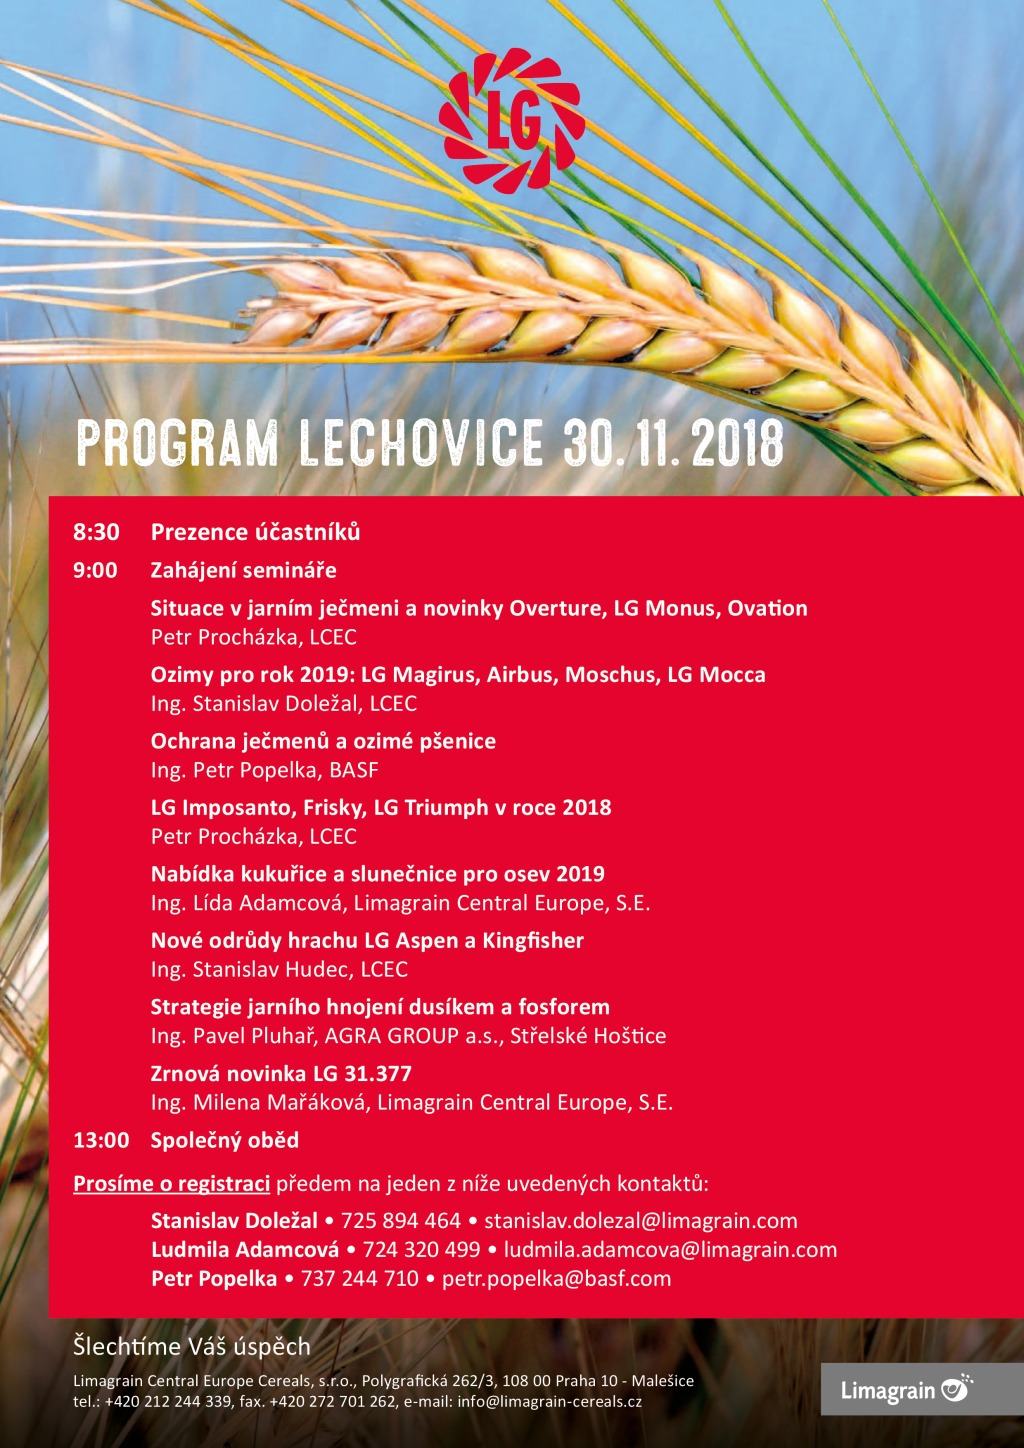 PROGRAM Lechovice 2018